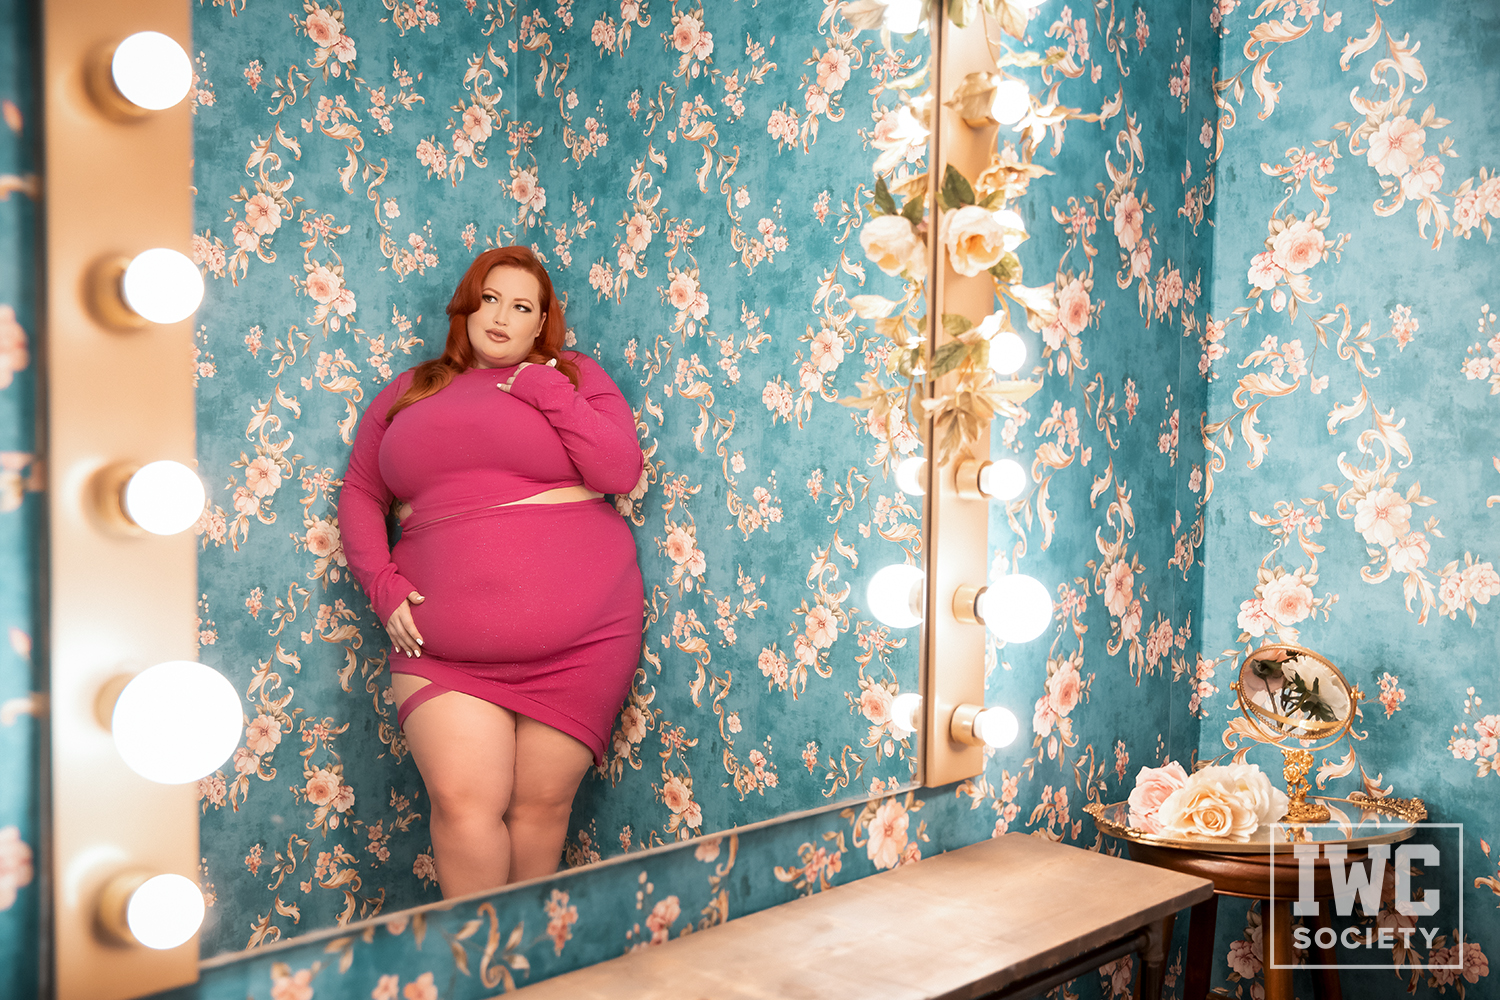 Eliza Allure BBW redhead staring into mirror while leaning on wall